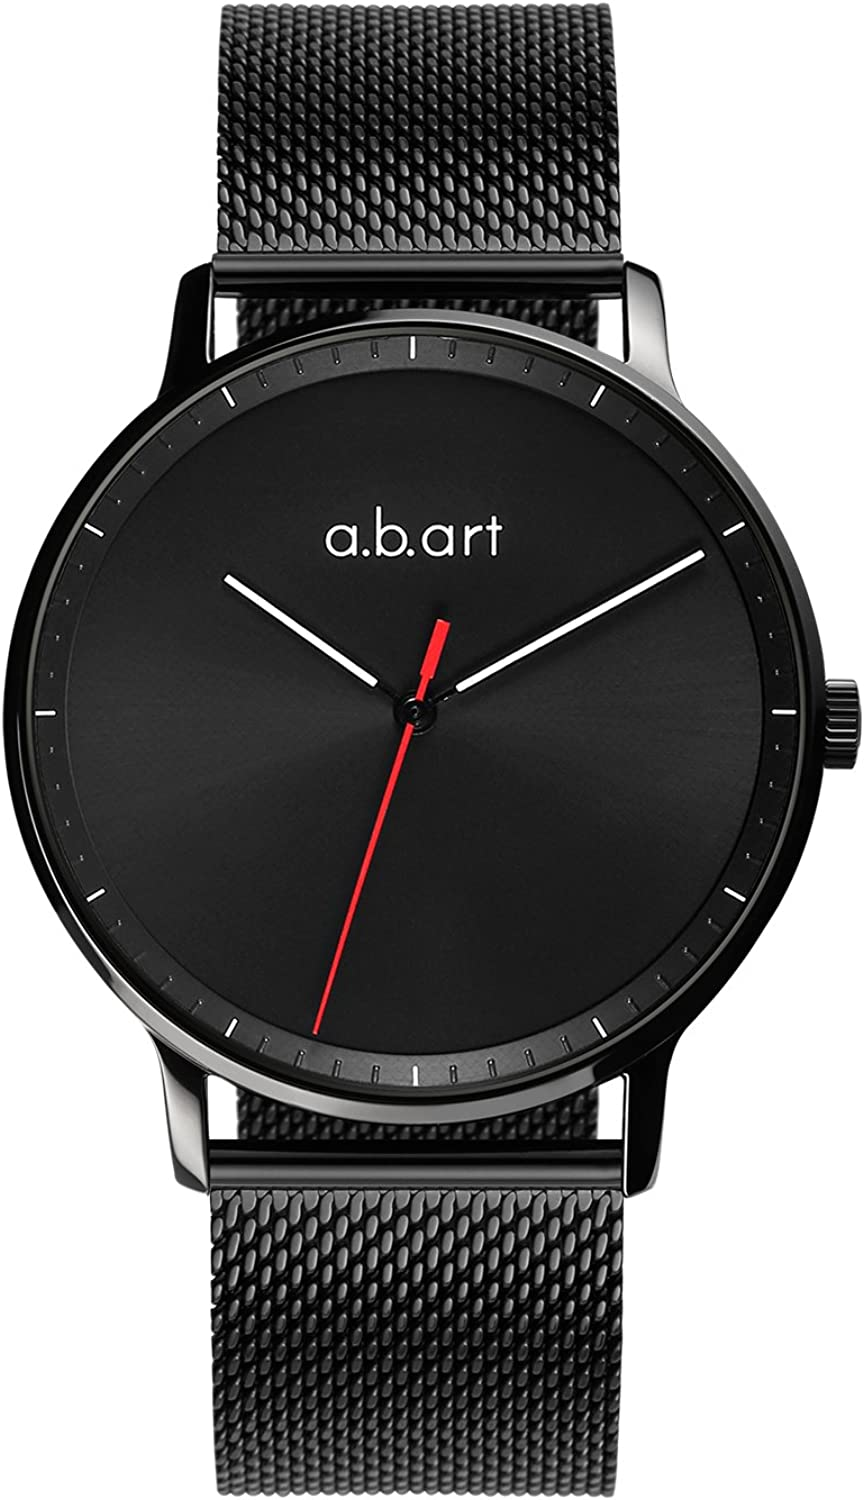 abart Touch X New Design Touchscreen Analog Mens Watch Smartwatch